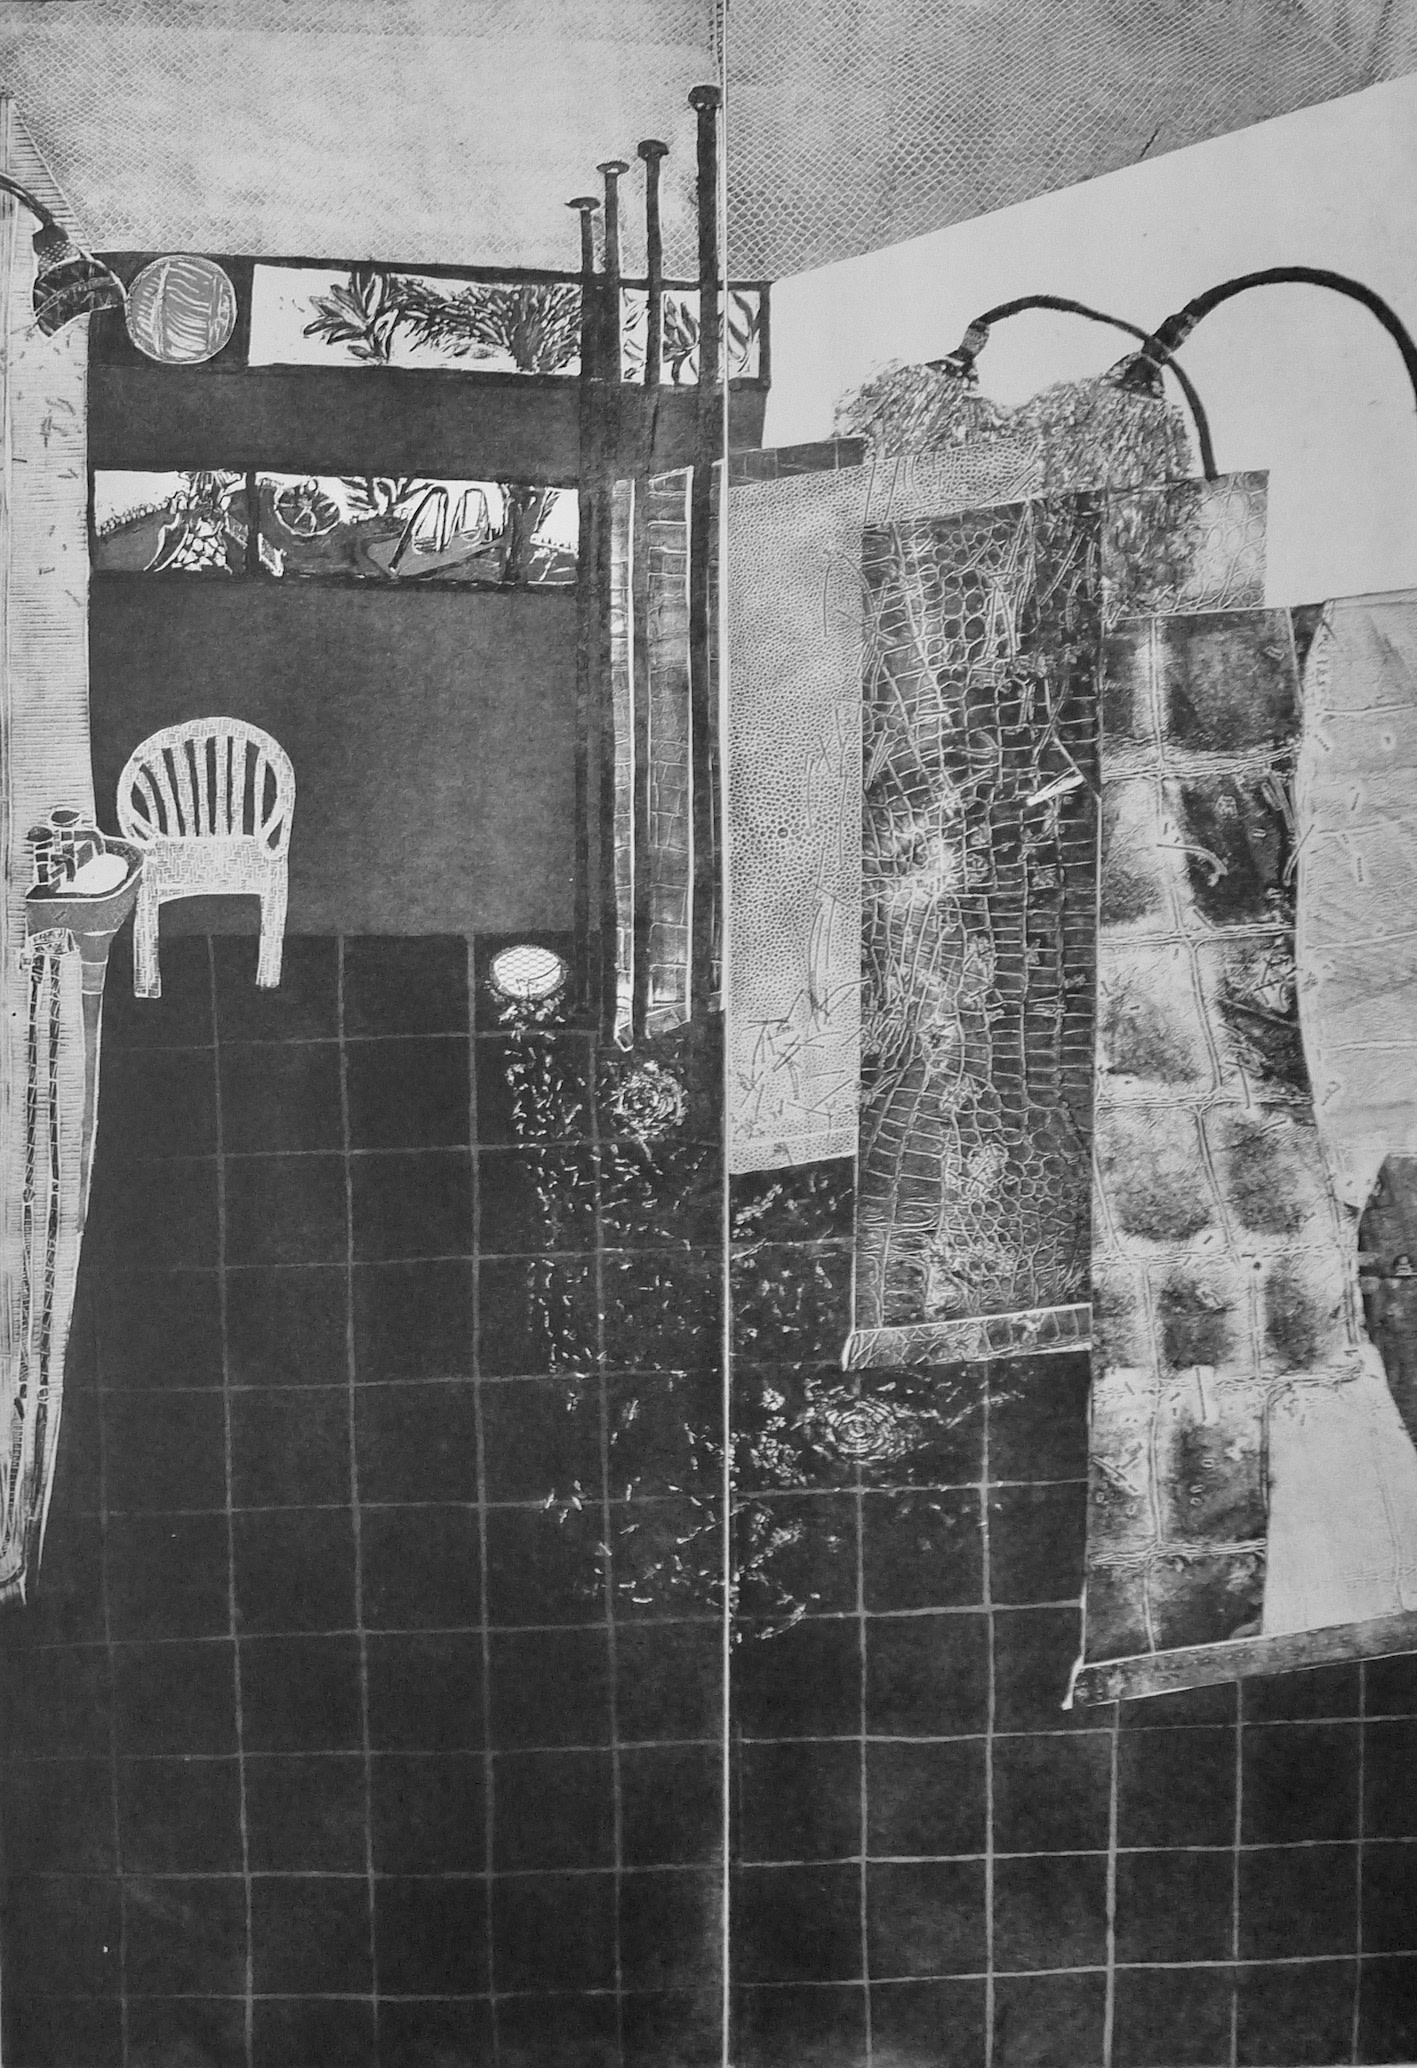 """<span class=""""link fancybox-details-link""""><a href=""""/exhibitions/17/works/image_standalone832/"""">View Detail Page</a></span><p><strong>Fouzia Zafar</strong></p><p>Waterfall, Arlington Baths</p><p>etching, ed of 15</p><p>114 x 82cm</p><p>£890 framed</p><p>£700 unframed</p>"""